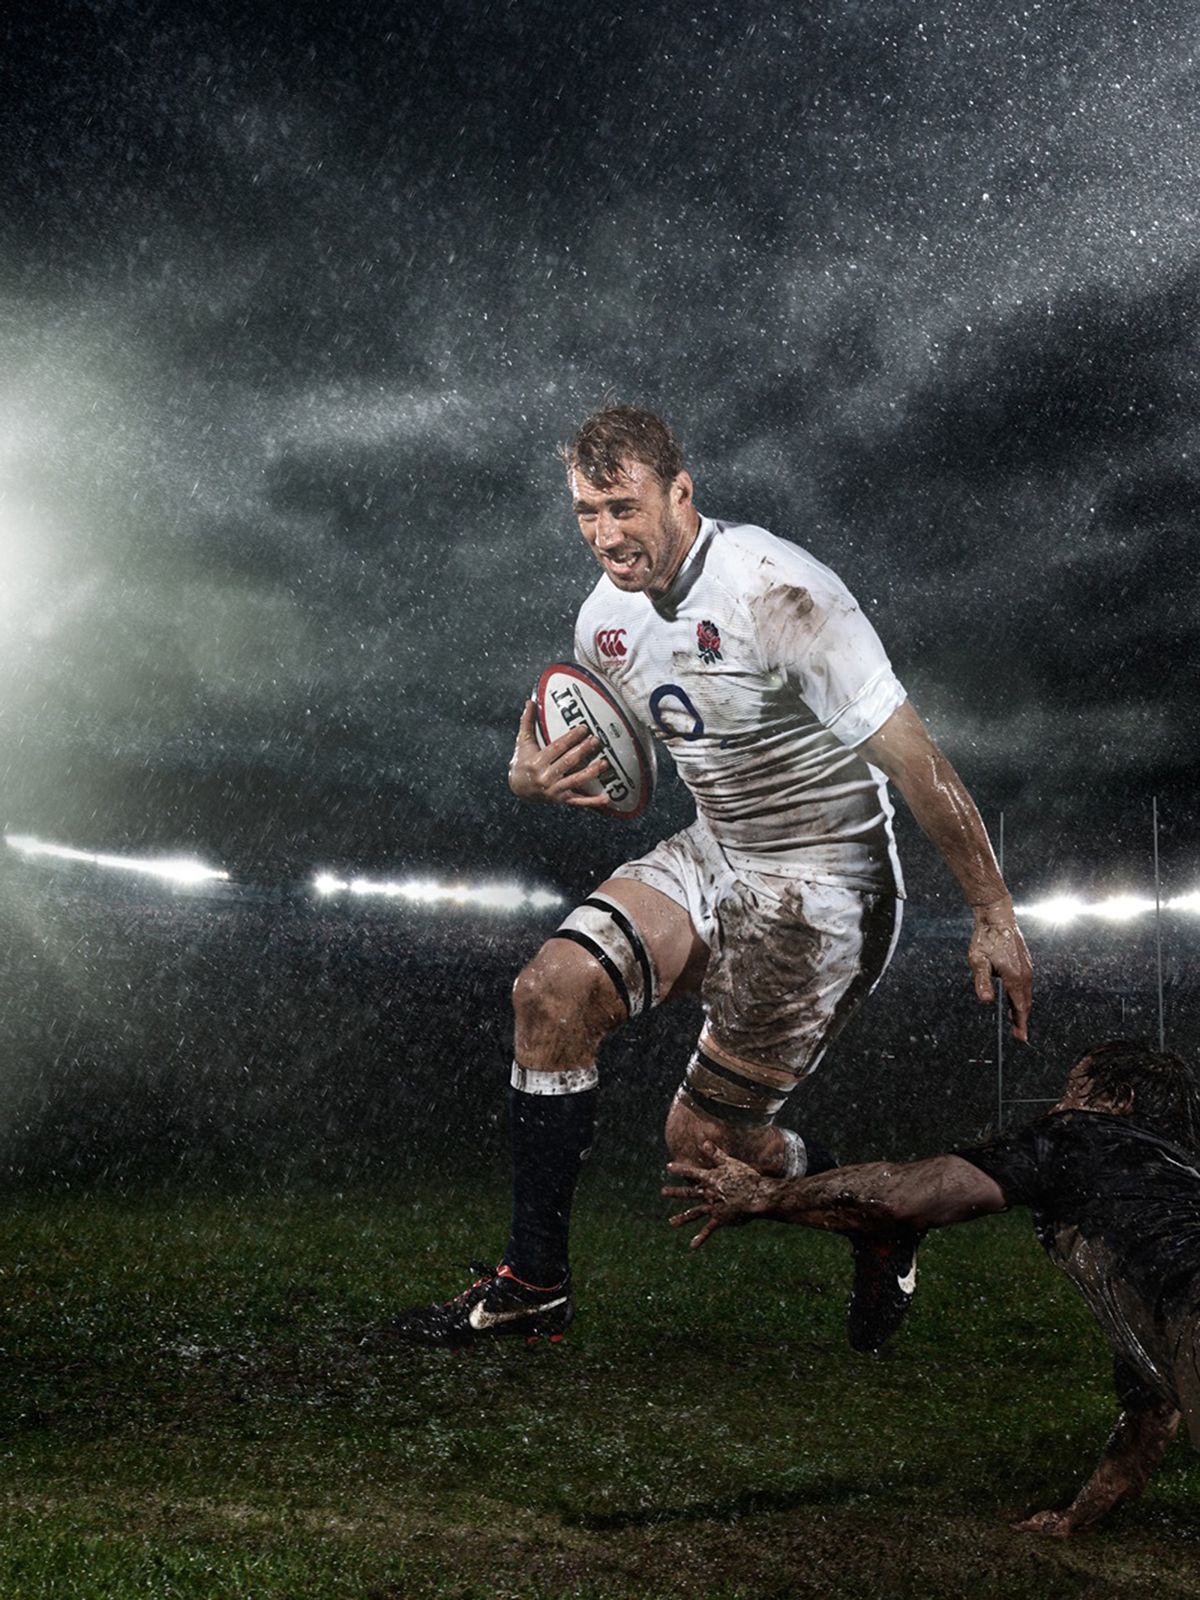 Pin by Thomas Budner on rugby Six nations rugby, Rugby